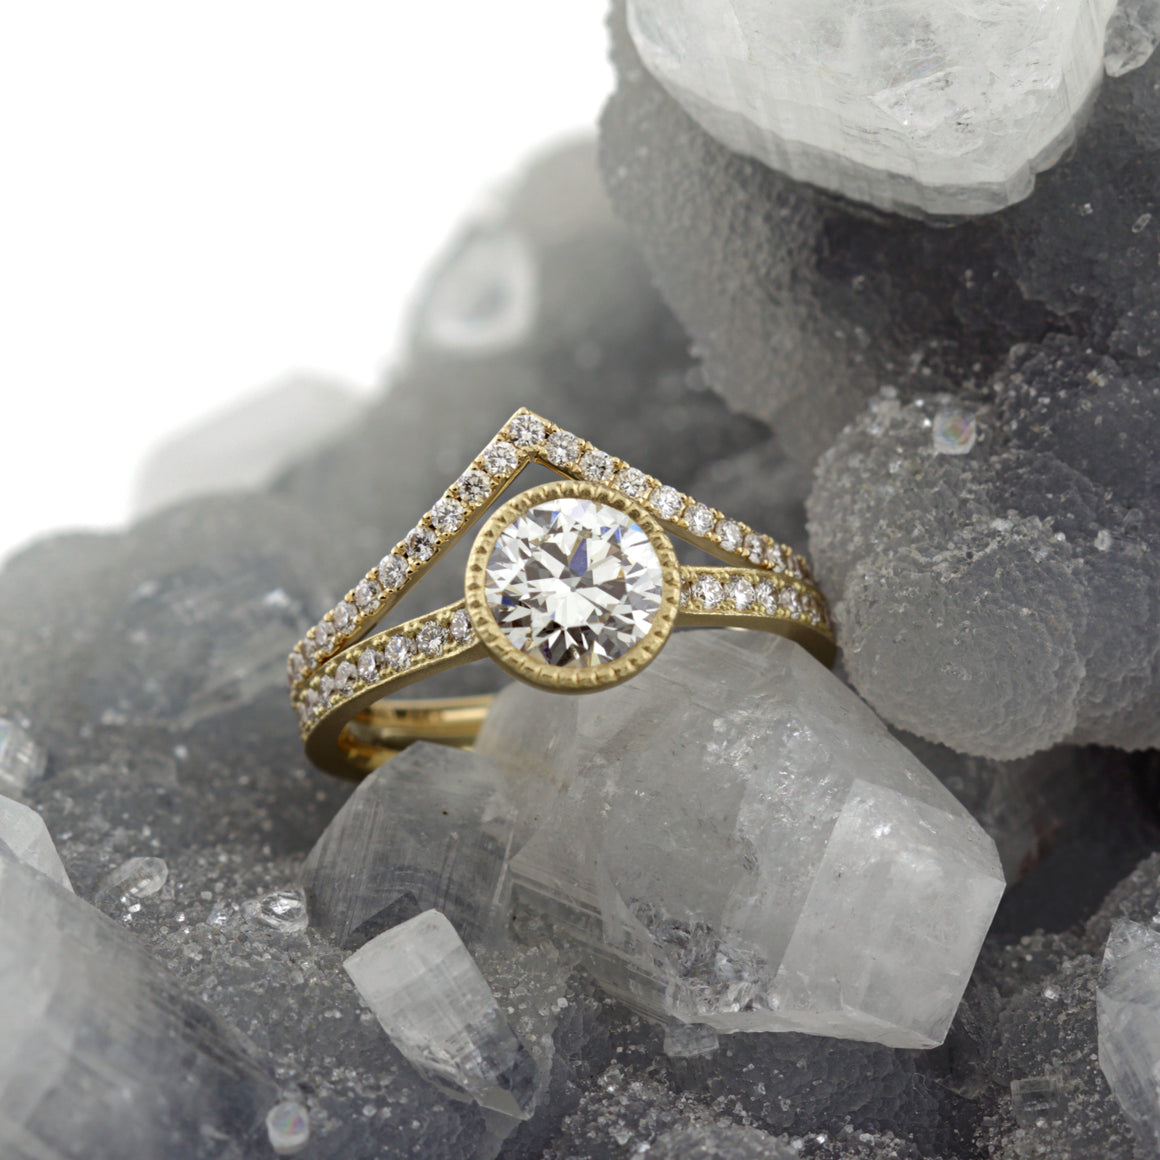 Stella Ring in Yellow Gold with Diamonds